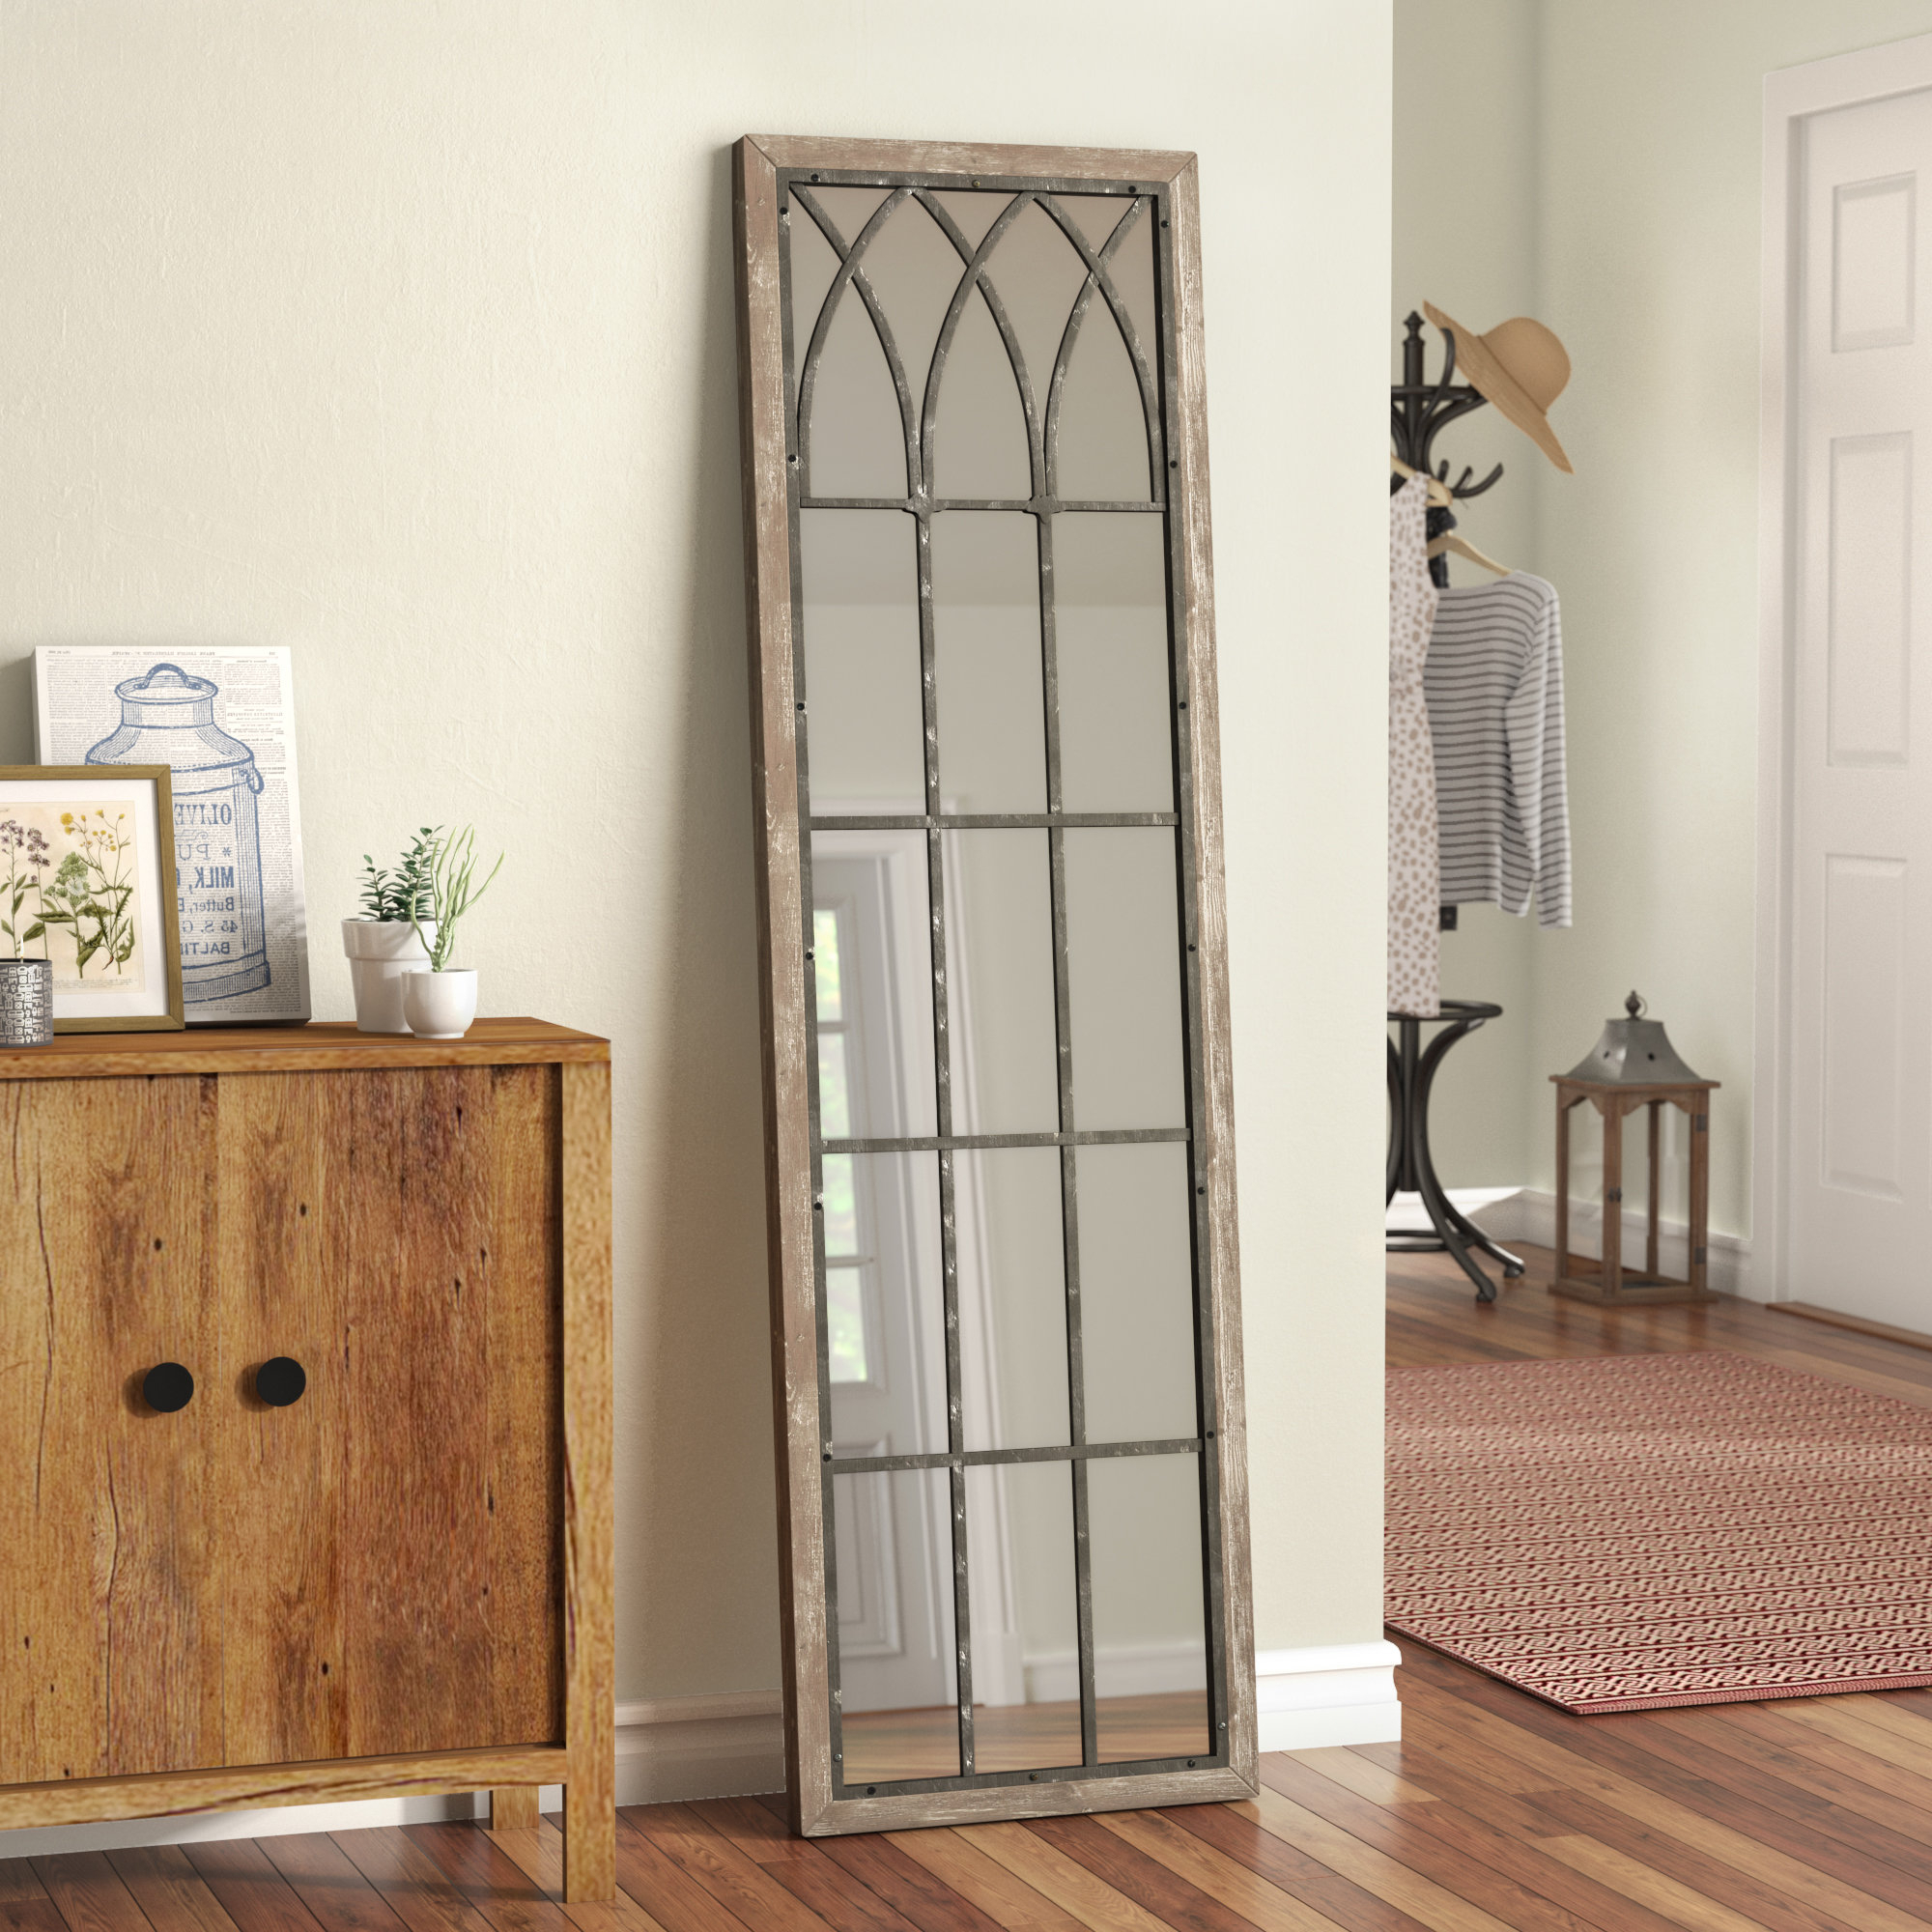 Wallaceton Wooden Full Length Wall Mirror Intended For Most Current 2 Piece Priscilla Square Traditional Beveled Distressed Accent Mirror Sets (View 14 of 20)